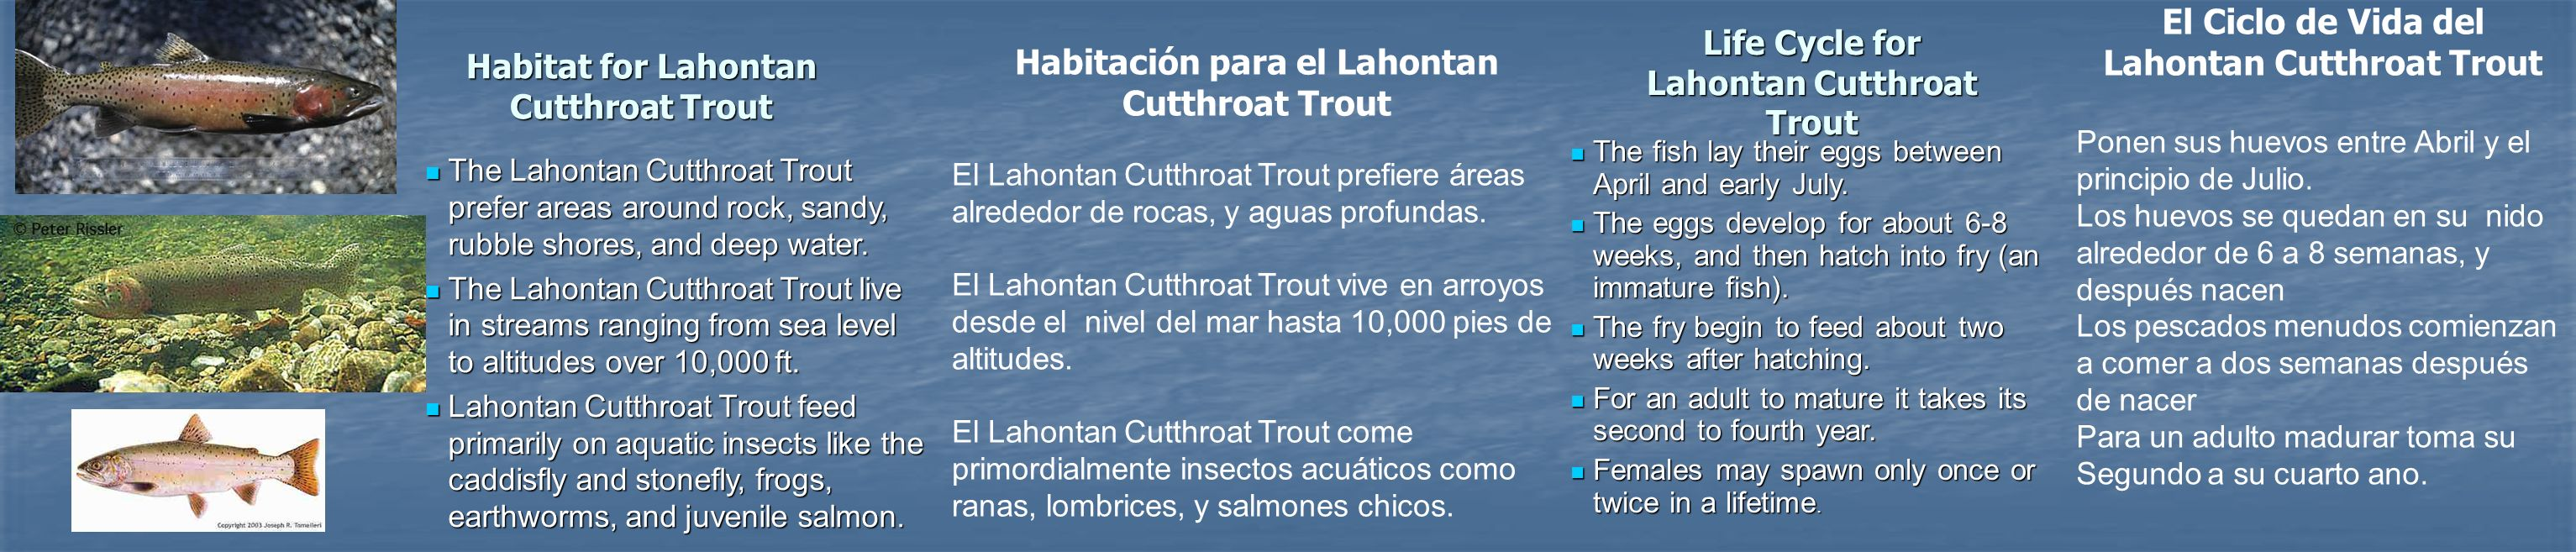 Life Cycle for Lahontan Cutthroat Trout The fish lay their eggs between April and early July. The fish lay their eggs between April and early July. Th